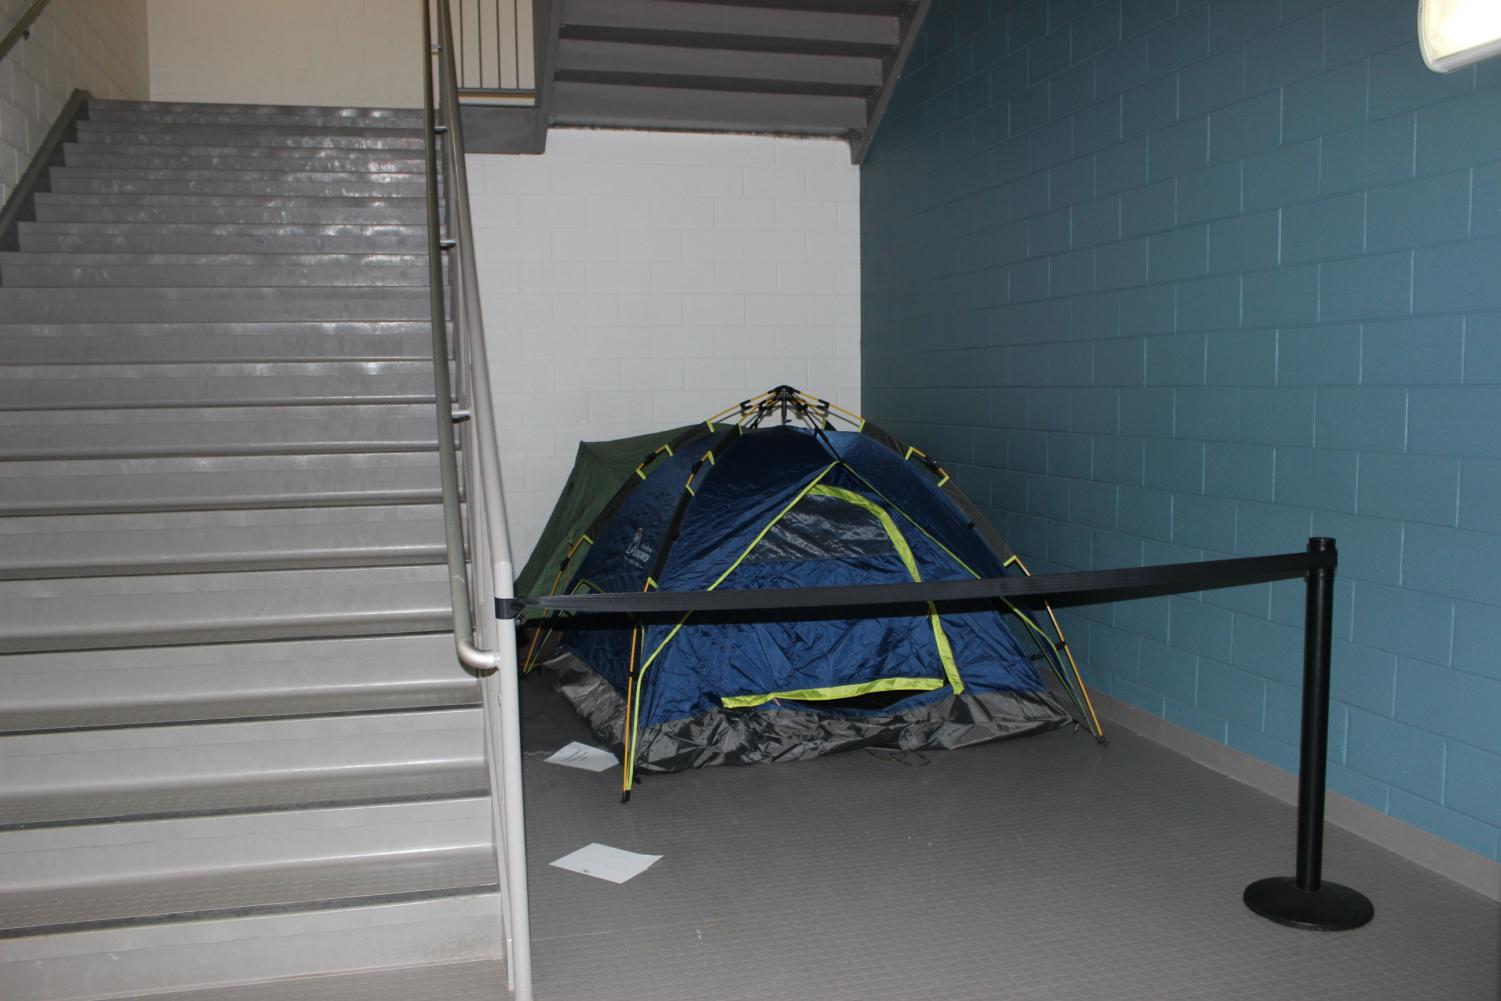 """The mysterious tent appeared around two months ago. Rumors have been circulating among students about what it could hold. """"Between third and fourth period my friends and I would sneak by the stairwell to see if anyone was there, """" junior Elena Harris said."""